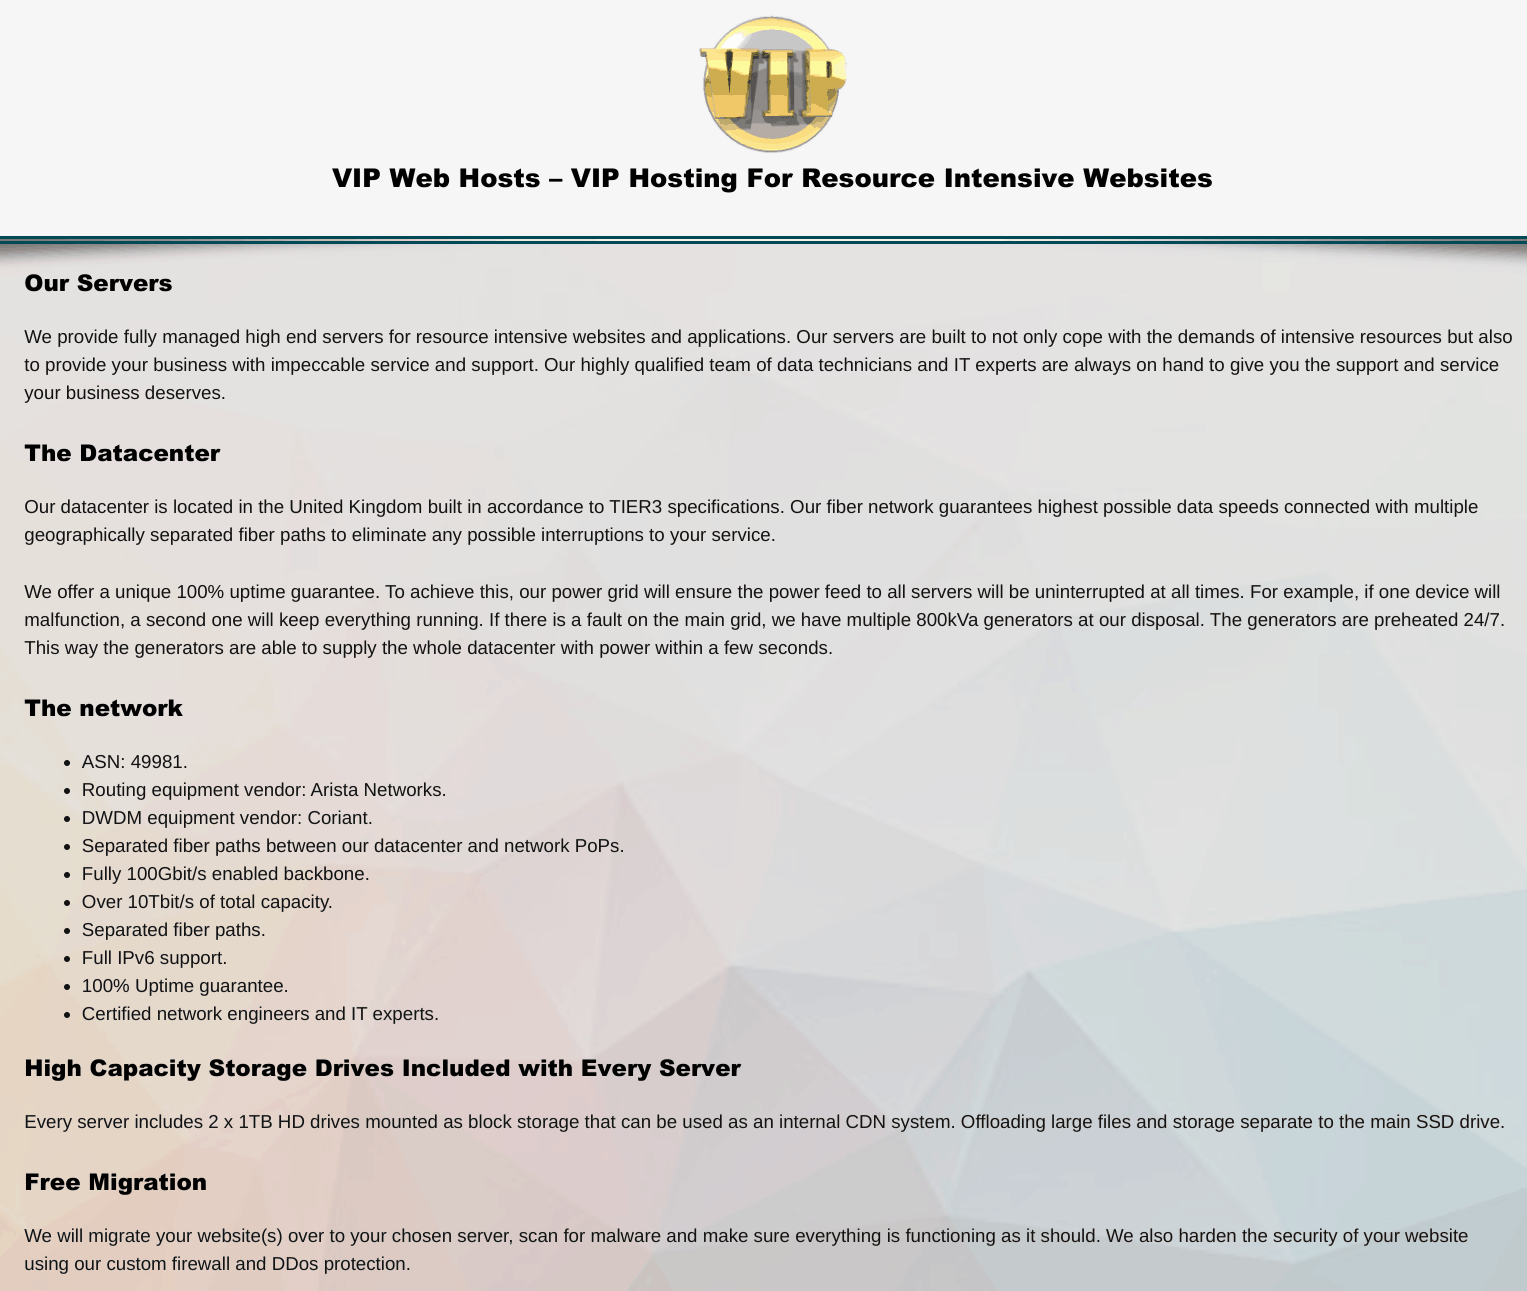 VIP Web Hosts overview